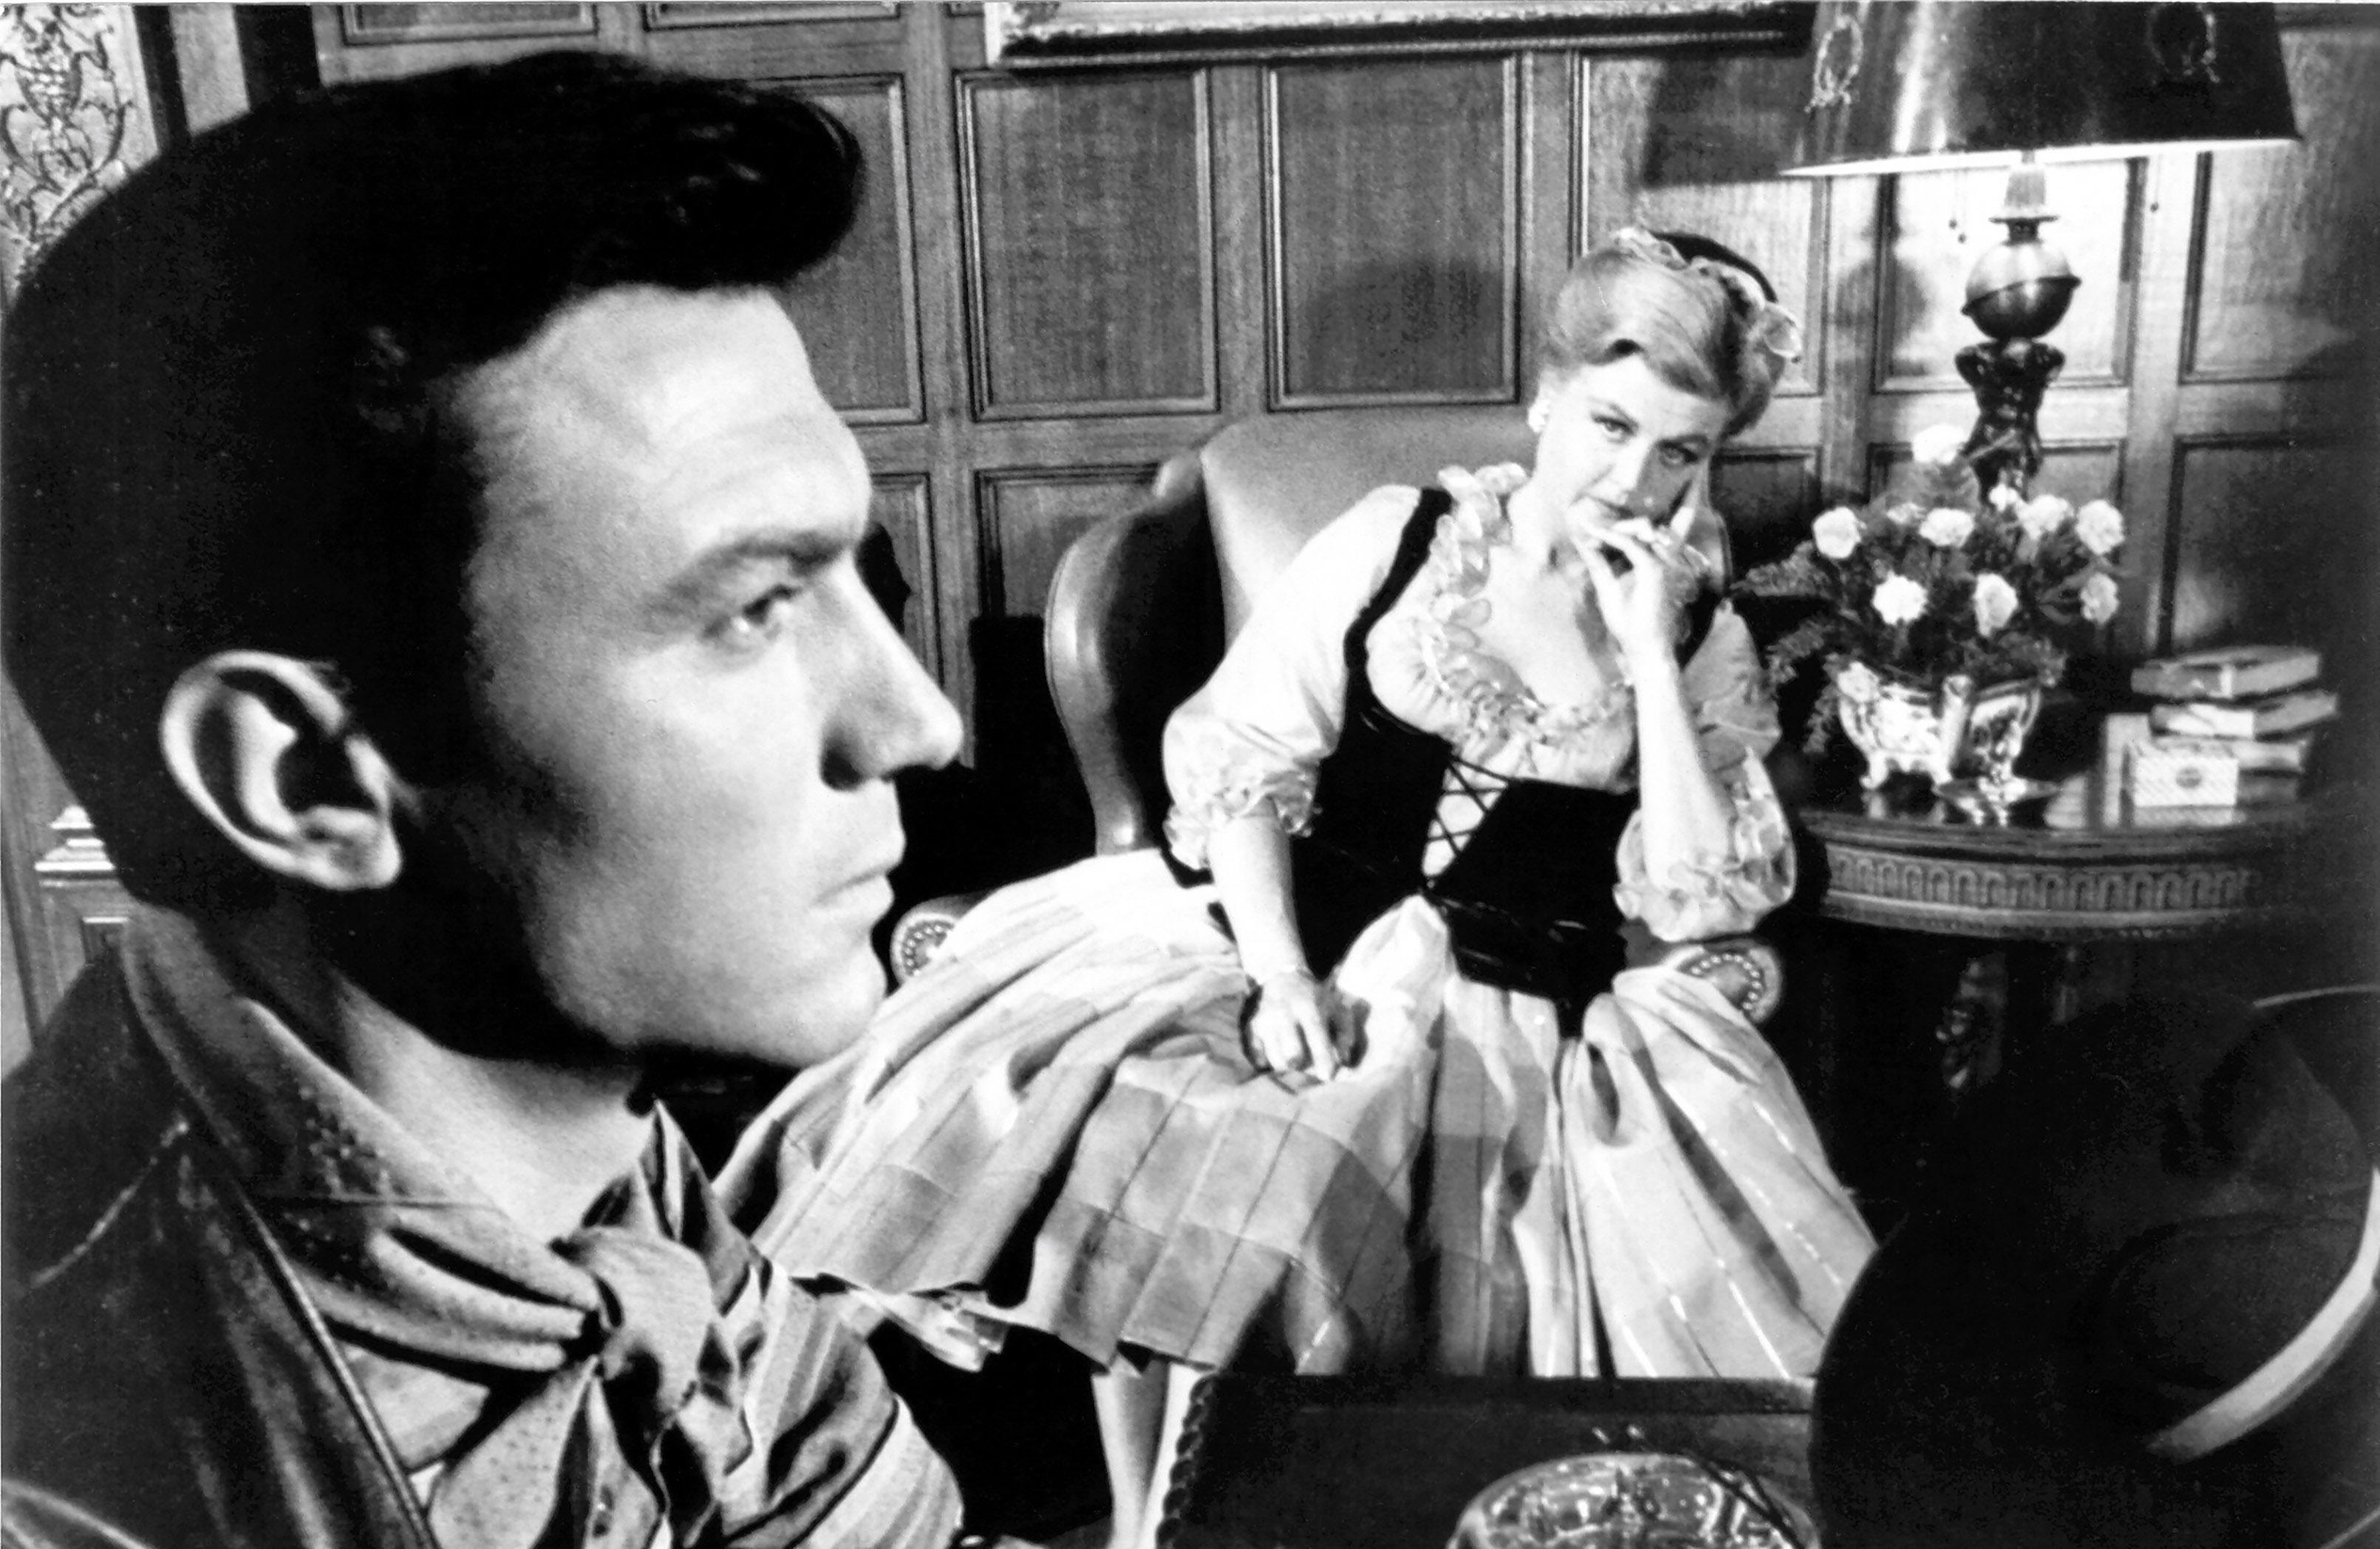 Sergeant Raymond Shaw (Laurence Harvey) and his mother Angela Lansbury in The Manchurian Candidate (1962)